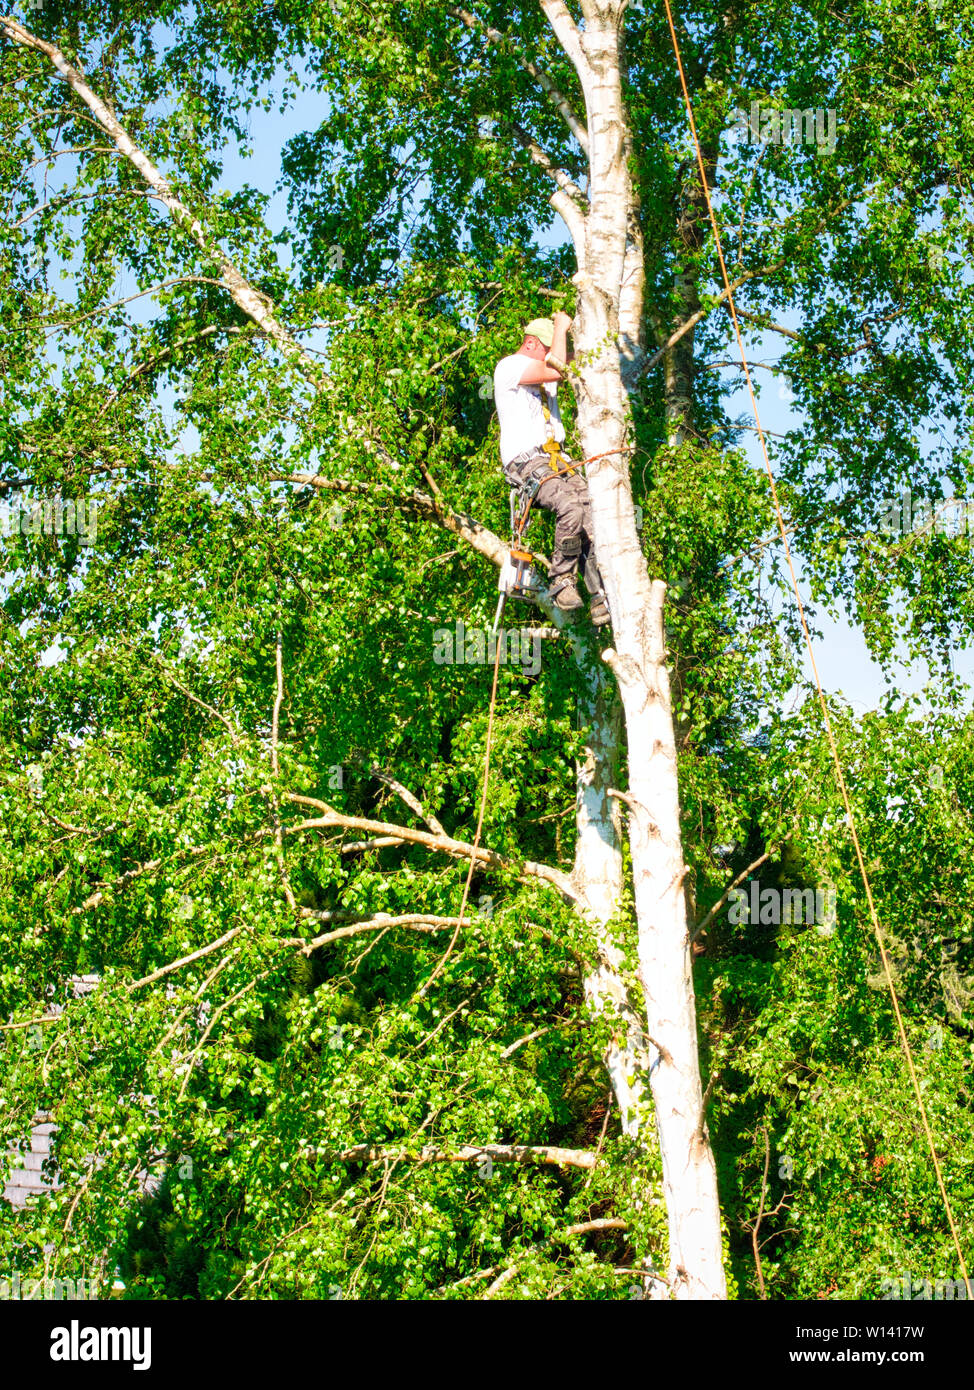 Mature professional male tree trimmer high in top birch tree cutting branches with gas powered chainsaw and attached with headgear for safe job. Exper Stock Photo